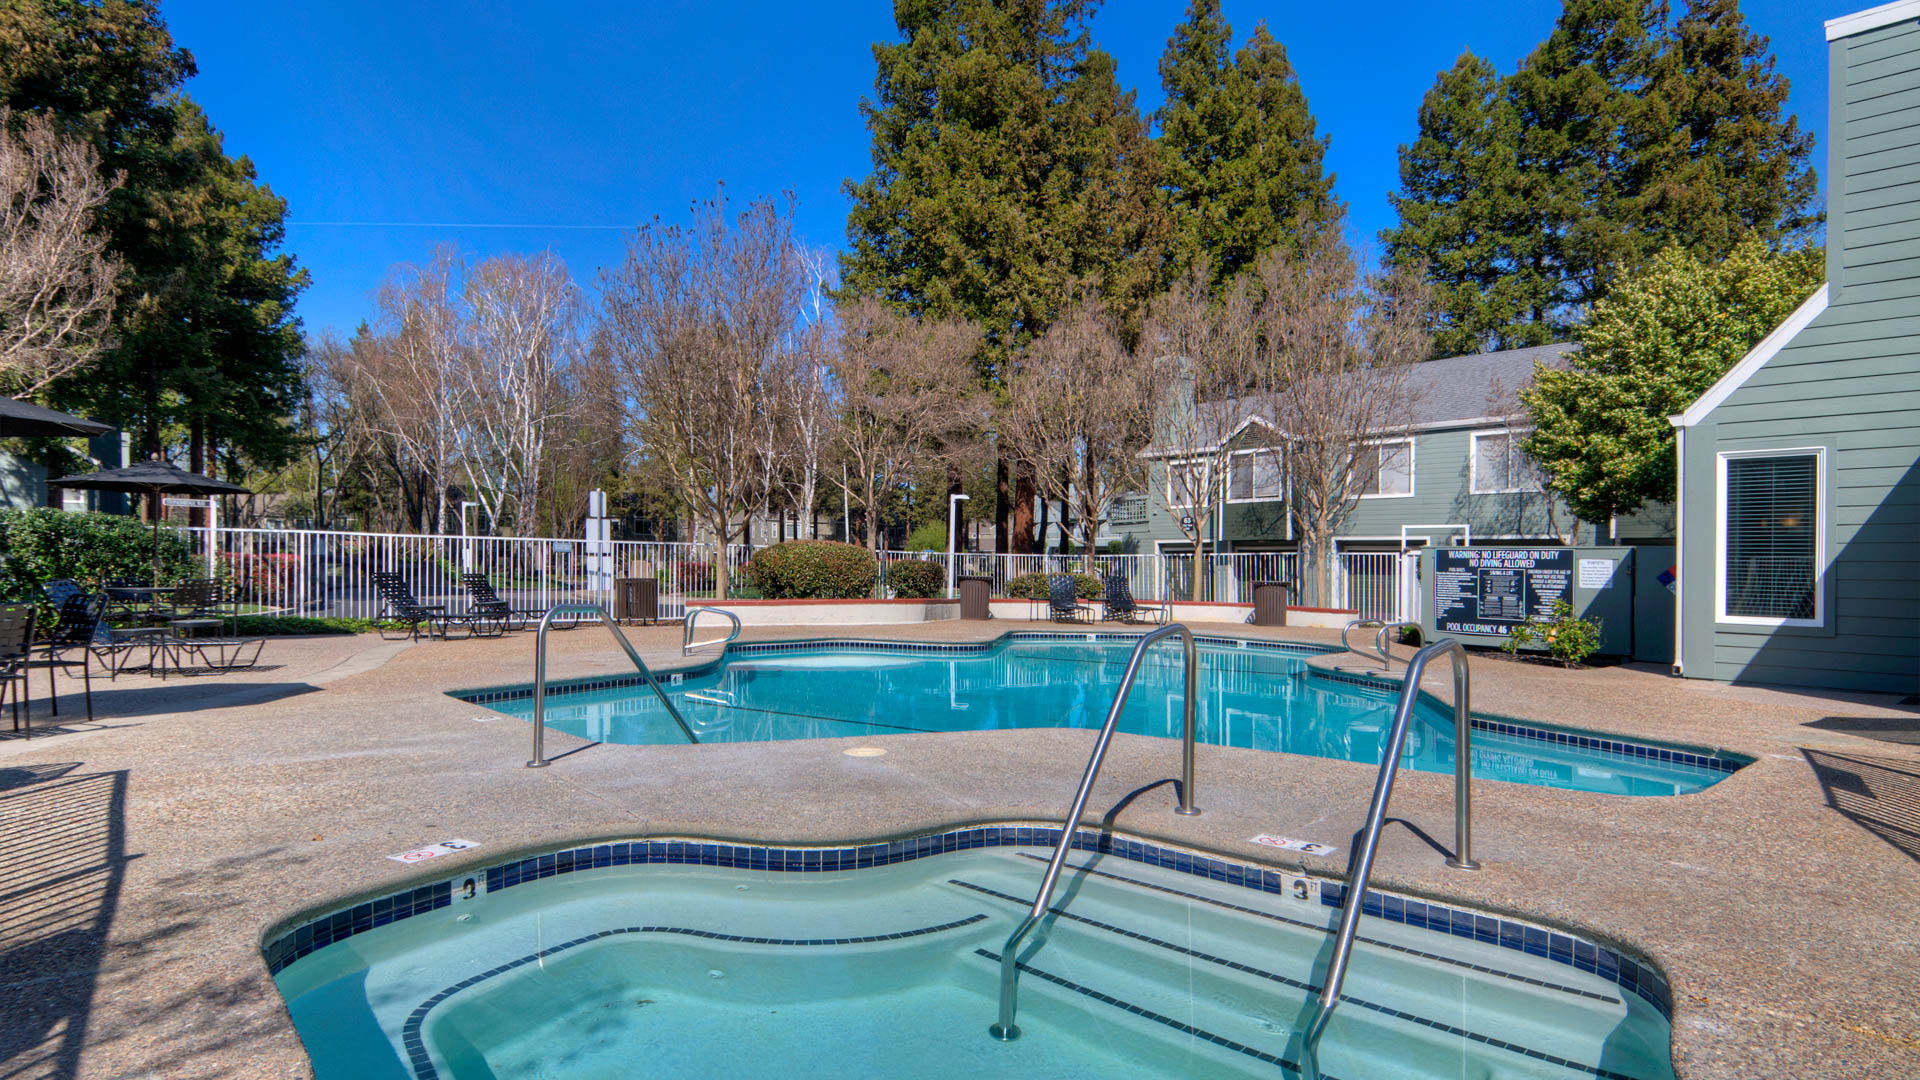 Wood Creek Apartments - Swimming Pool and Hot Tub